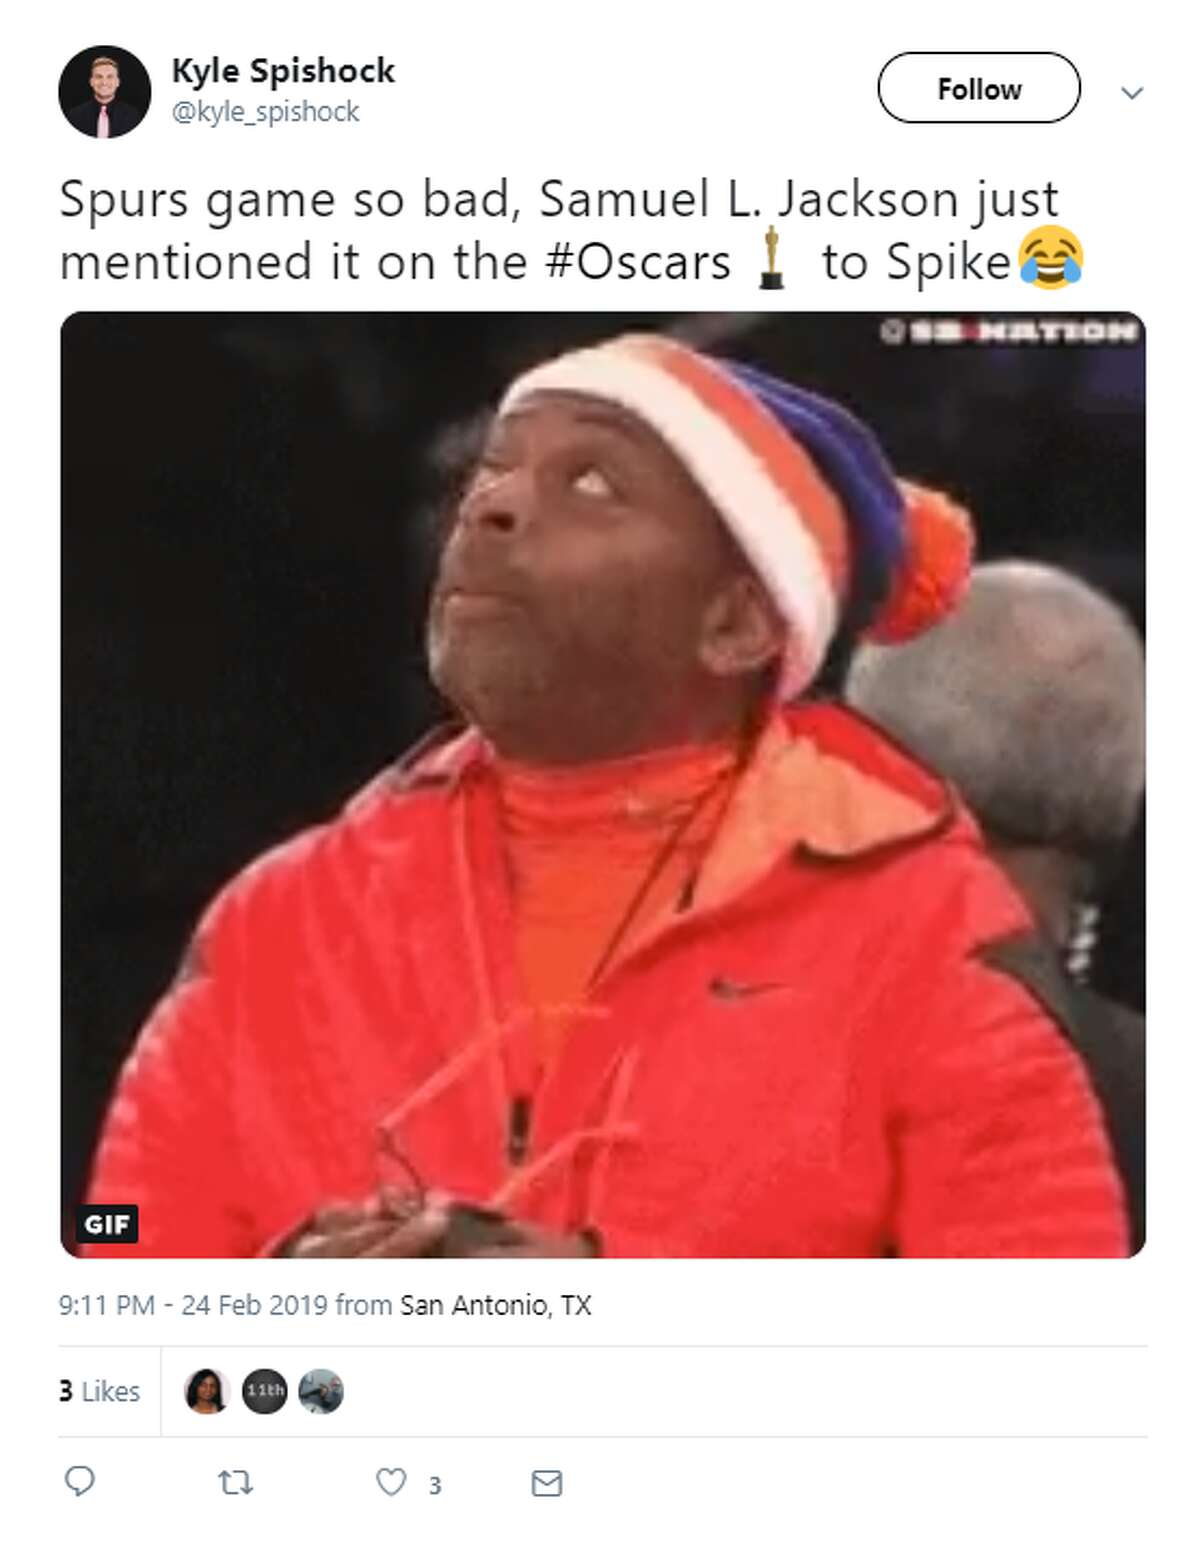 Twitter reacted to Samuel L. Jackson calling out the Spurs' loss to the Knicks at the 2019 Academy Awards.